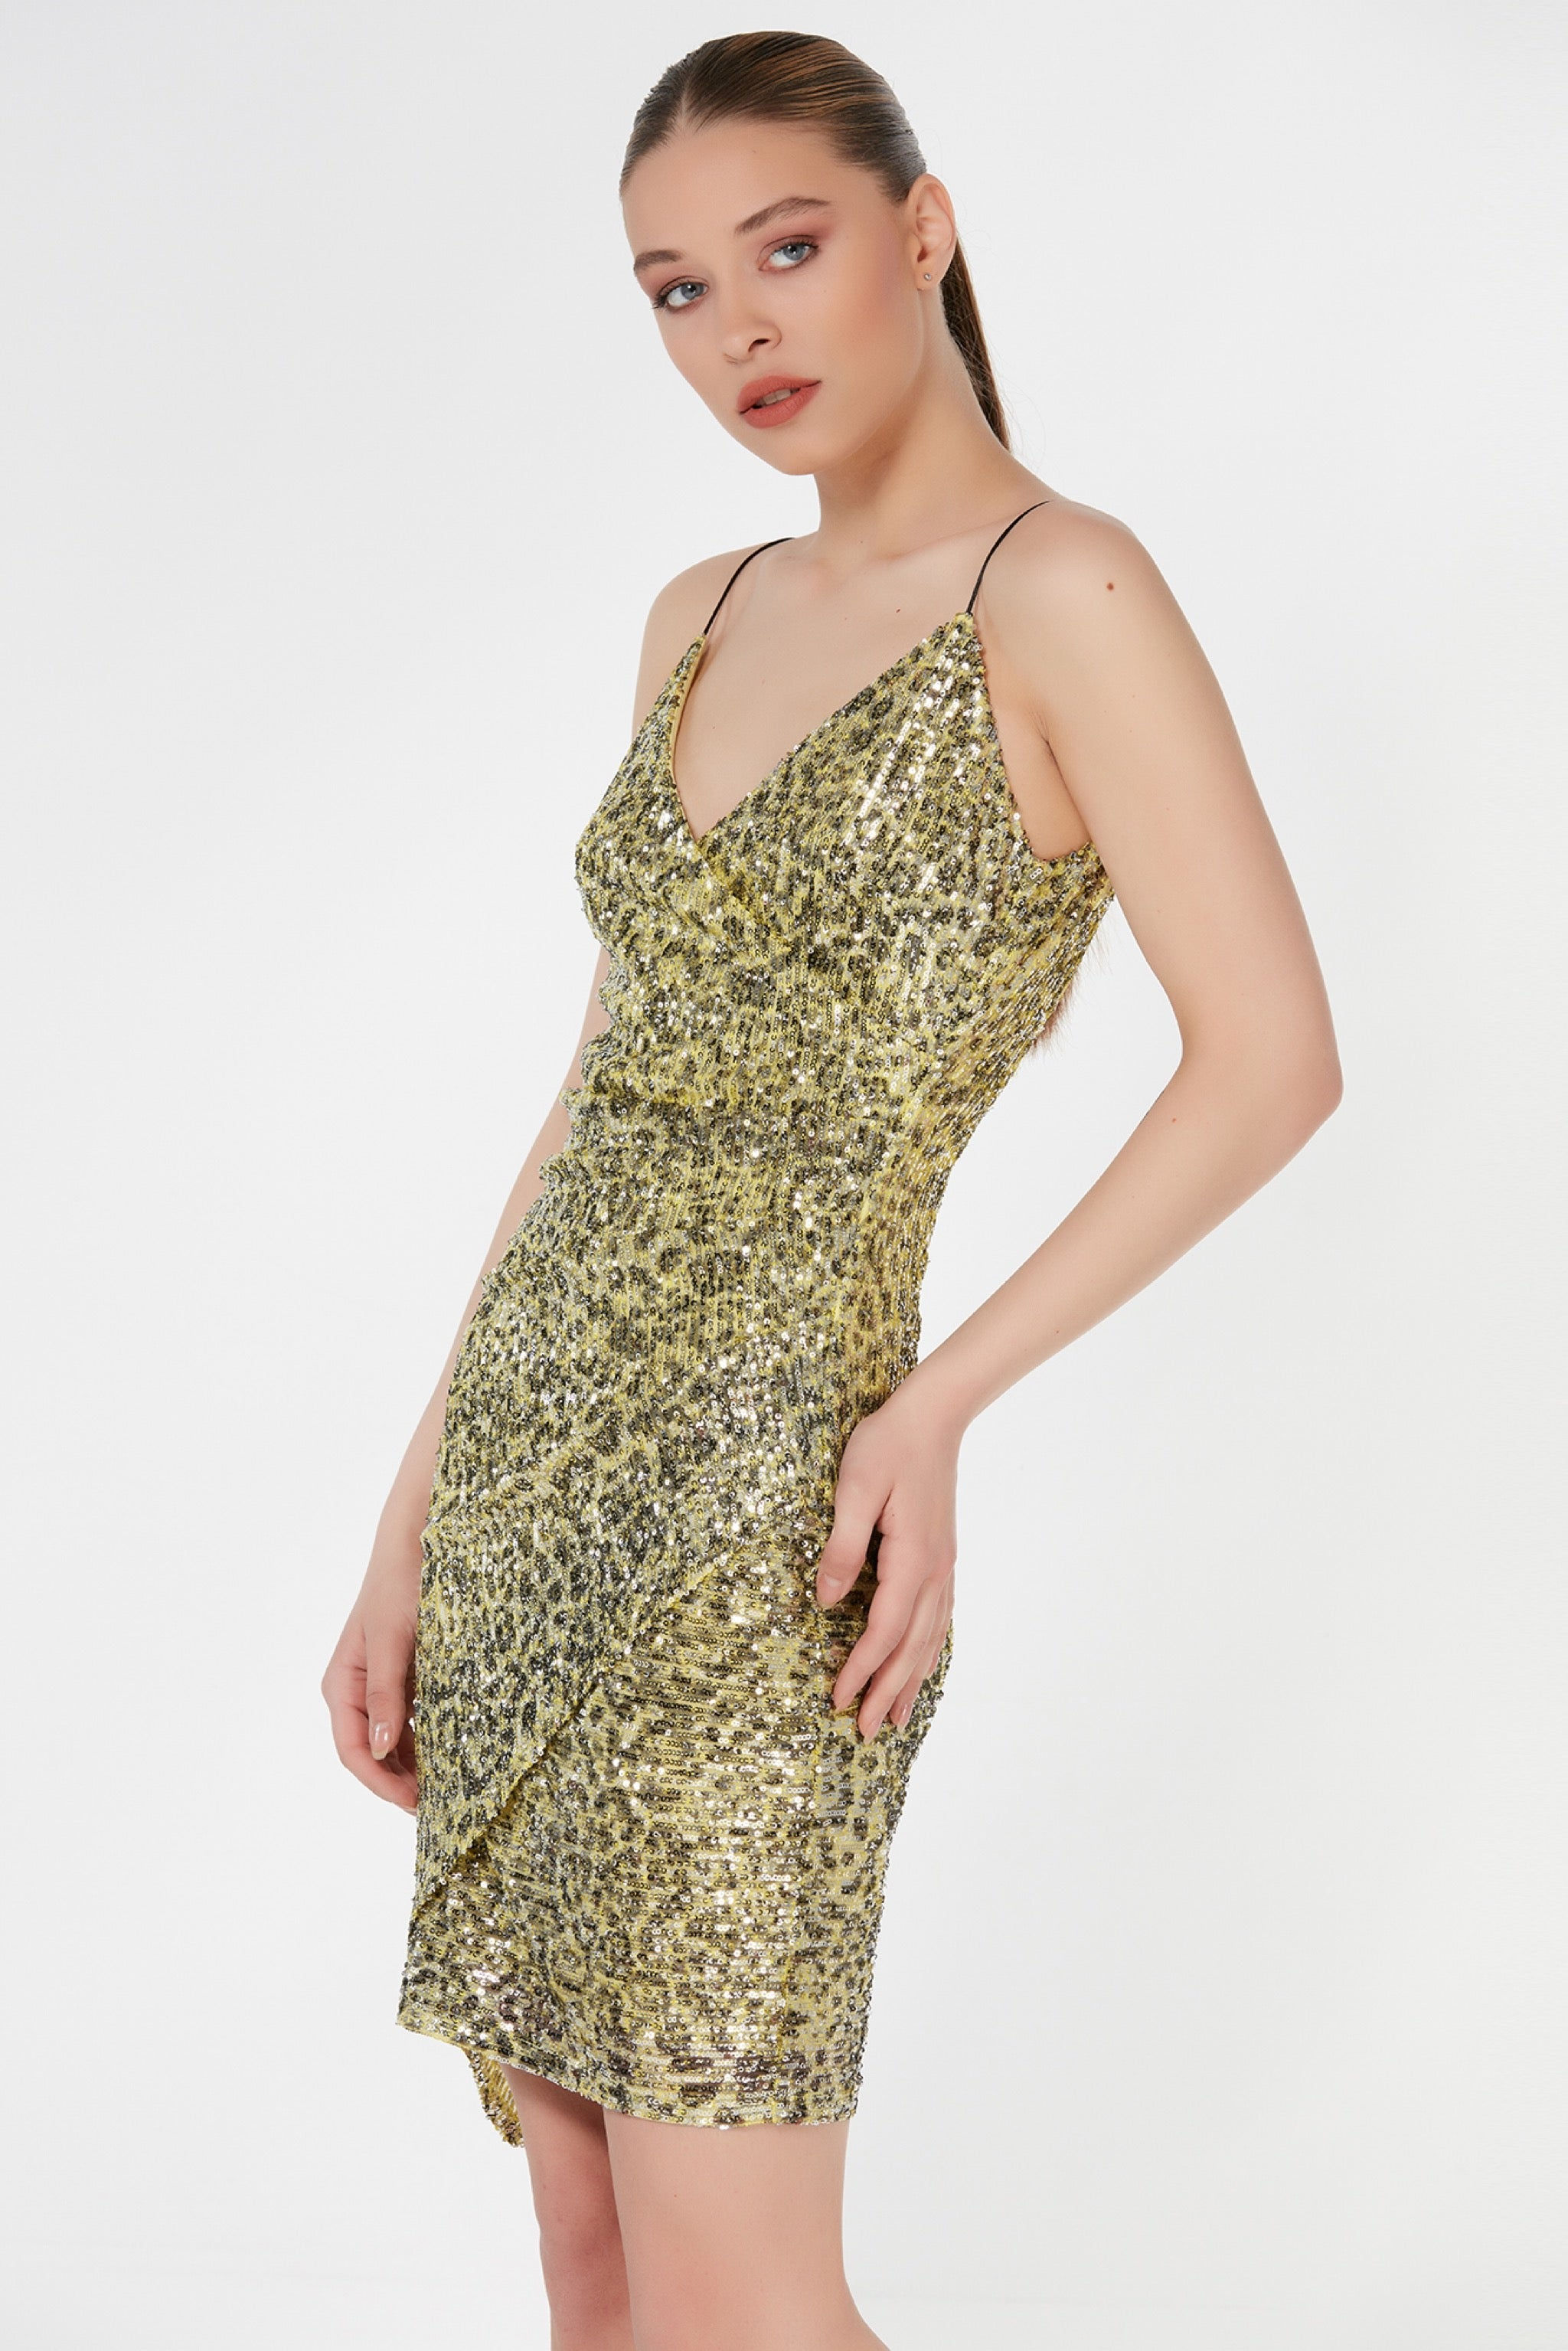 Animal print sequin bodycon strapless dress - 54403